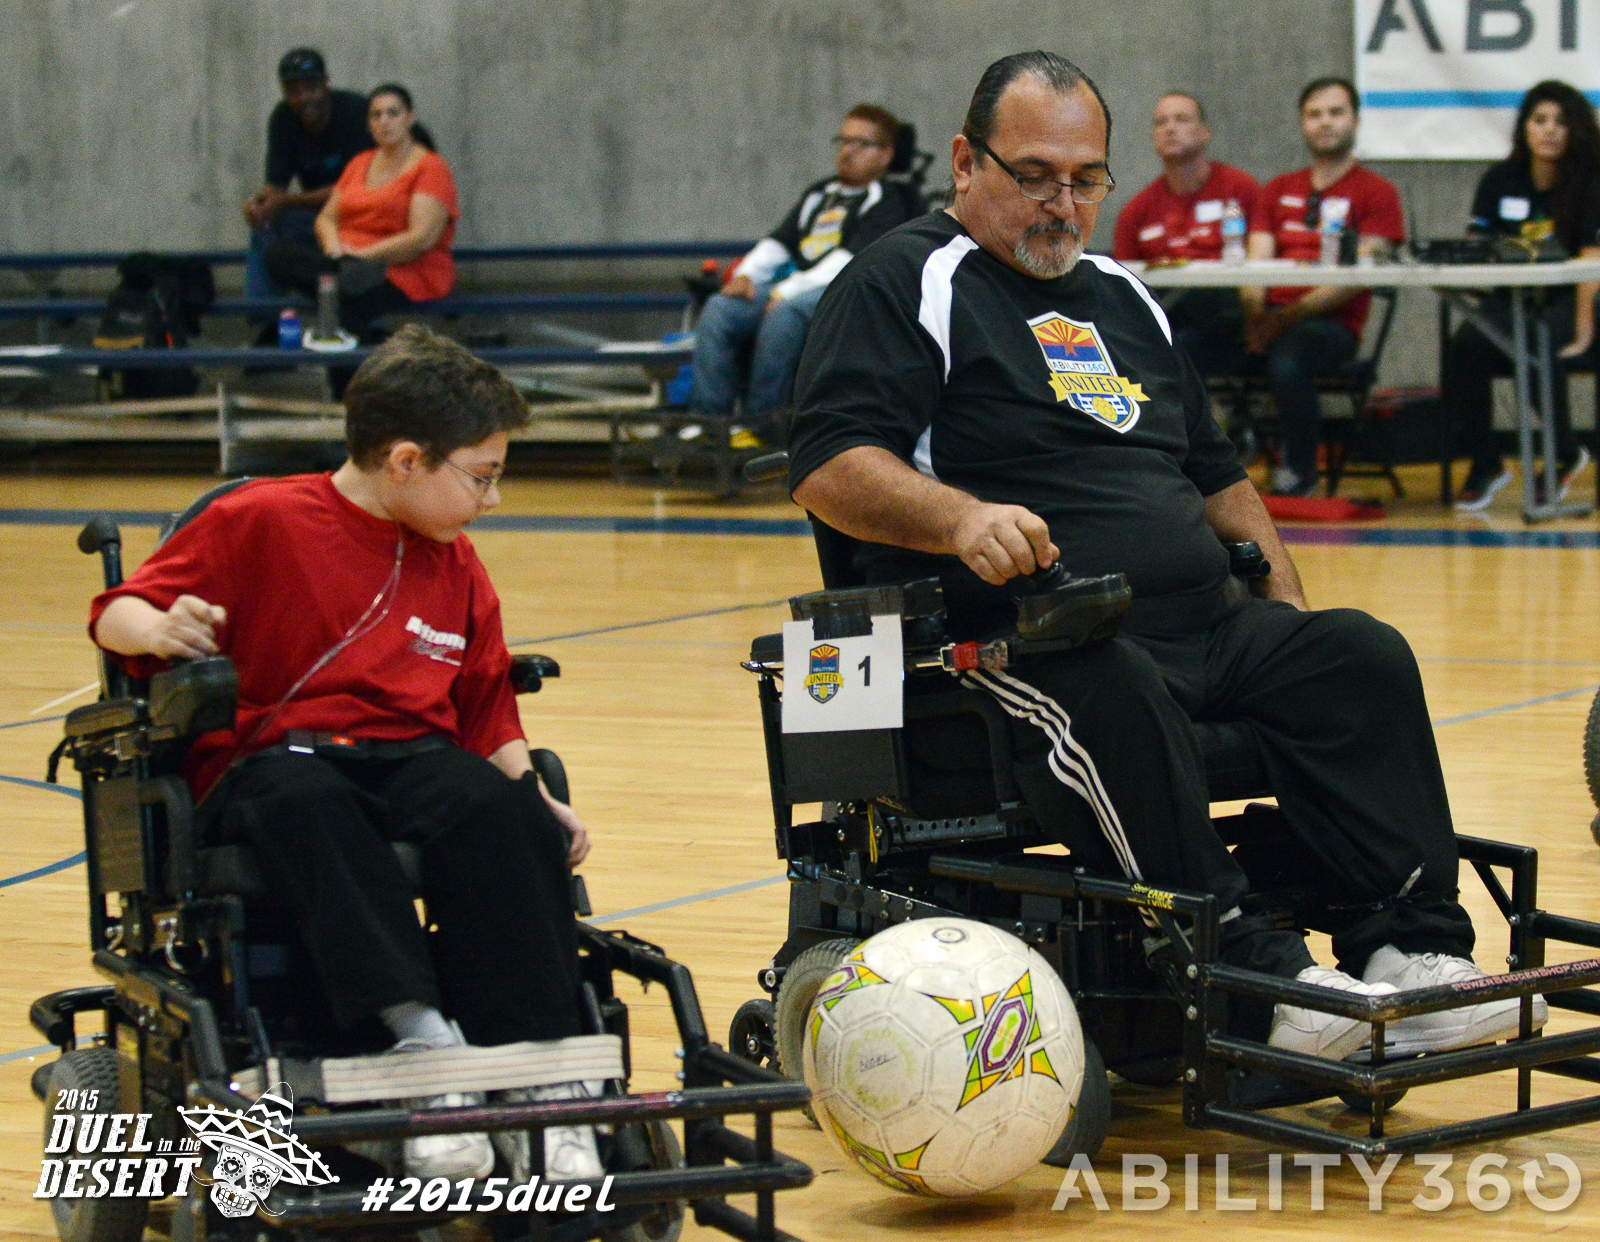 Two power chair players, one child, one adult , different teams, go for the ball between them